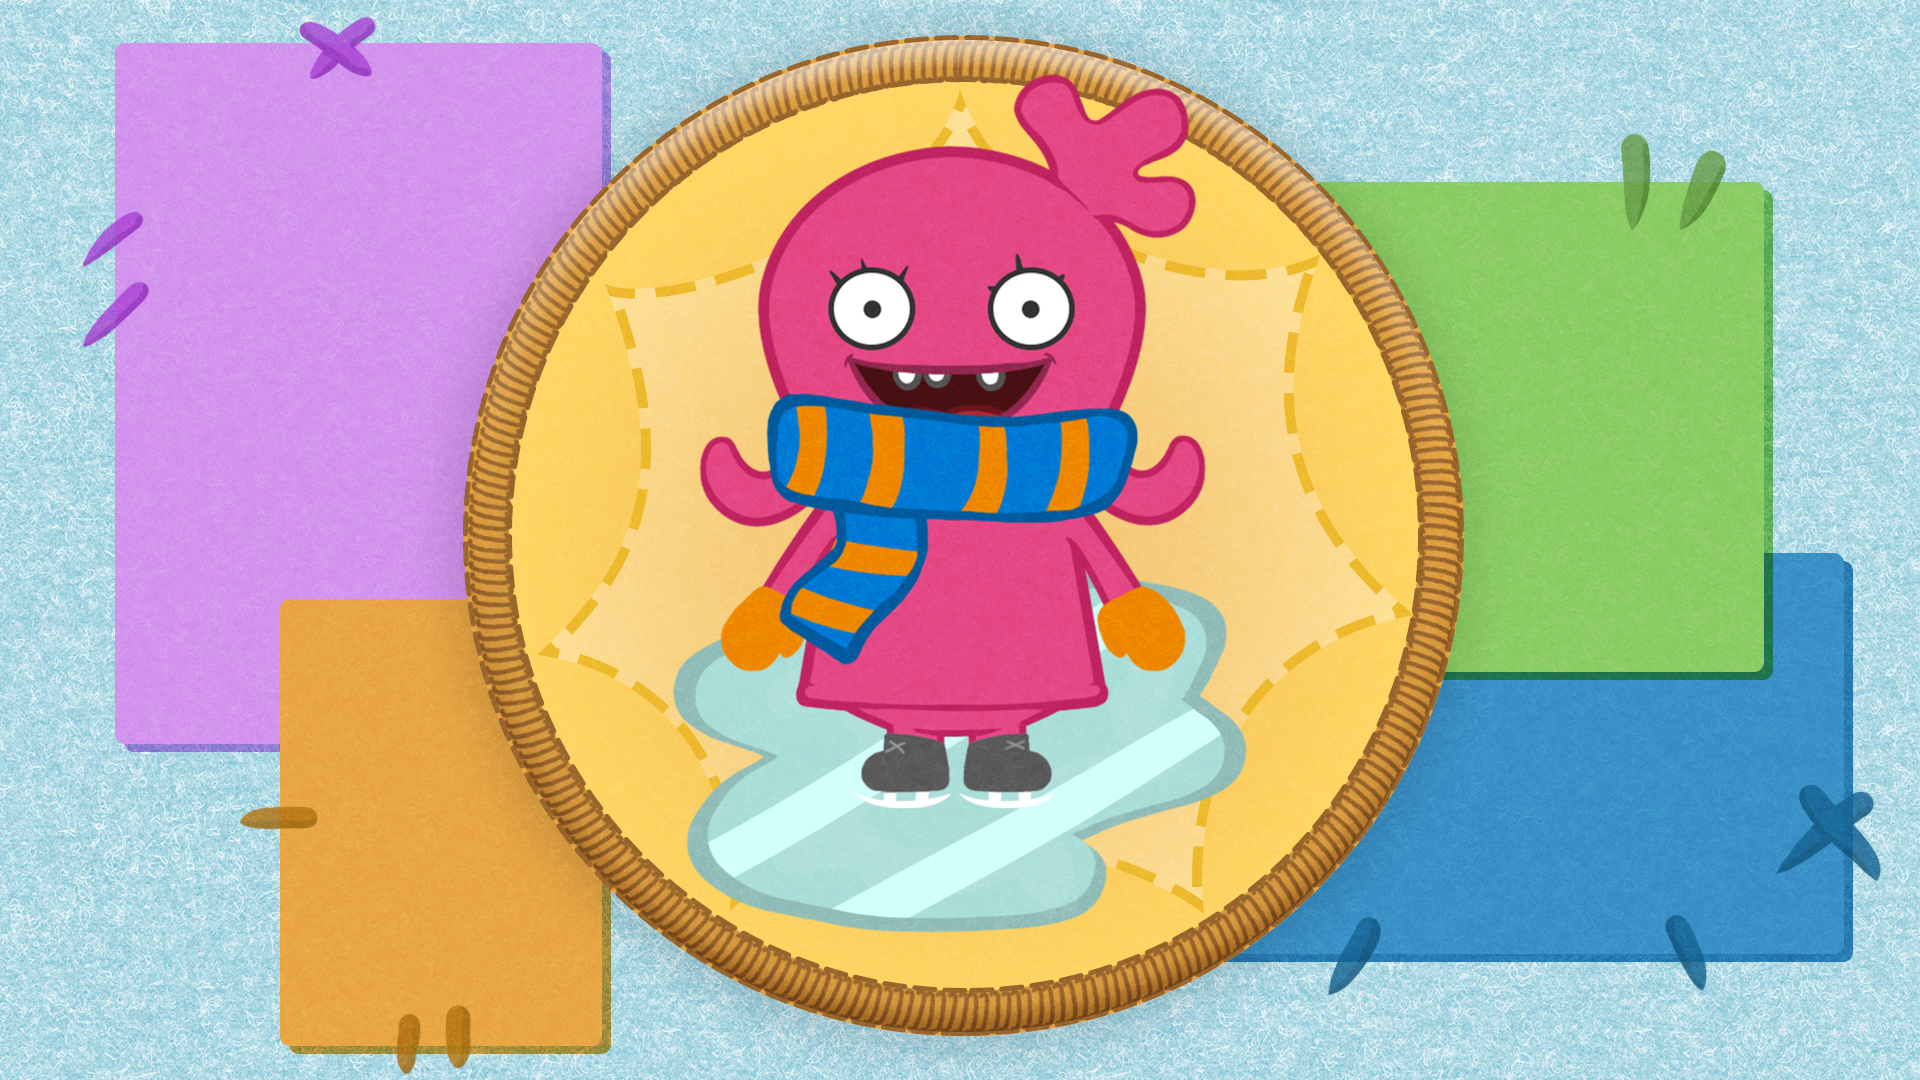 Icon for Ice skating. Whee!